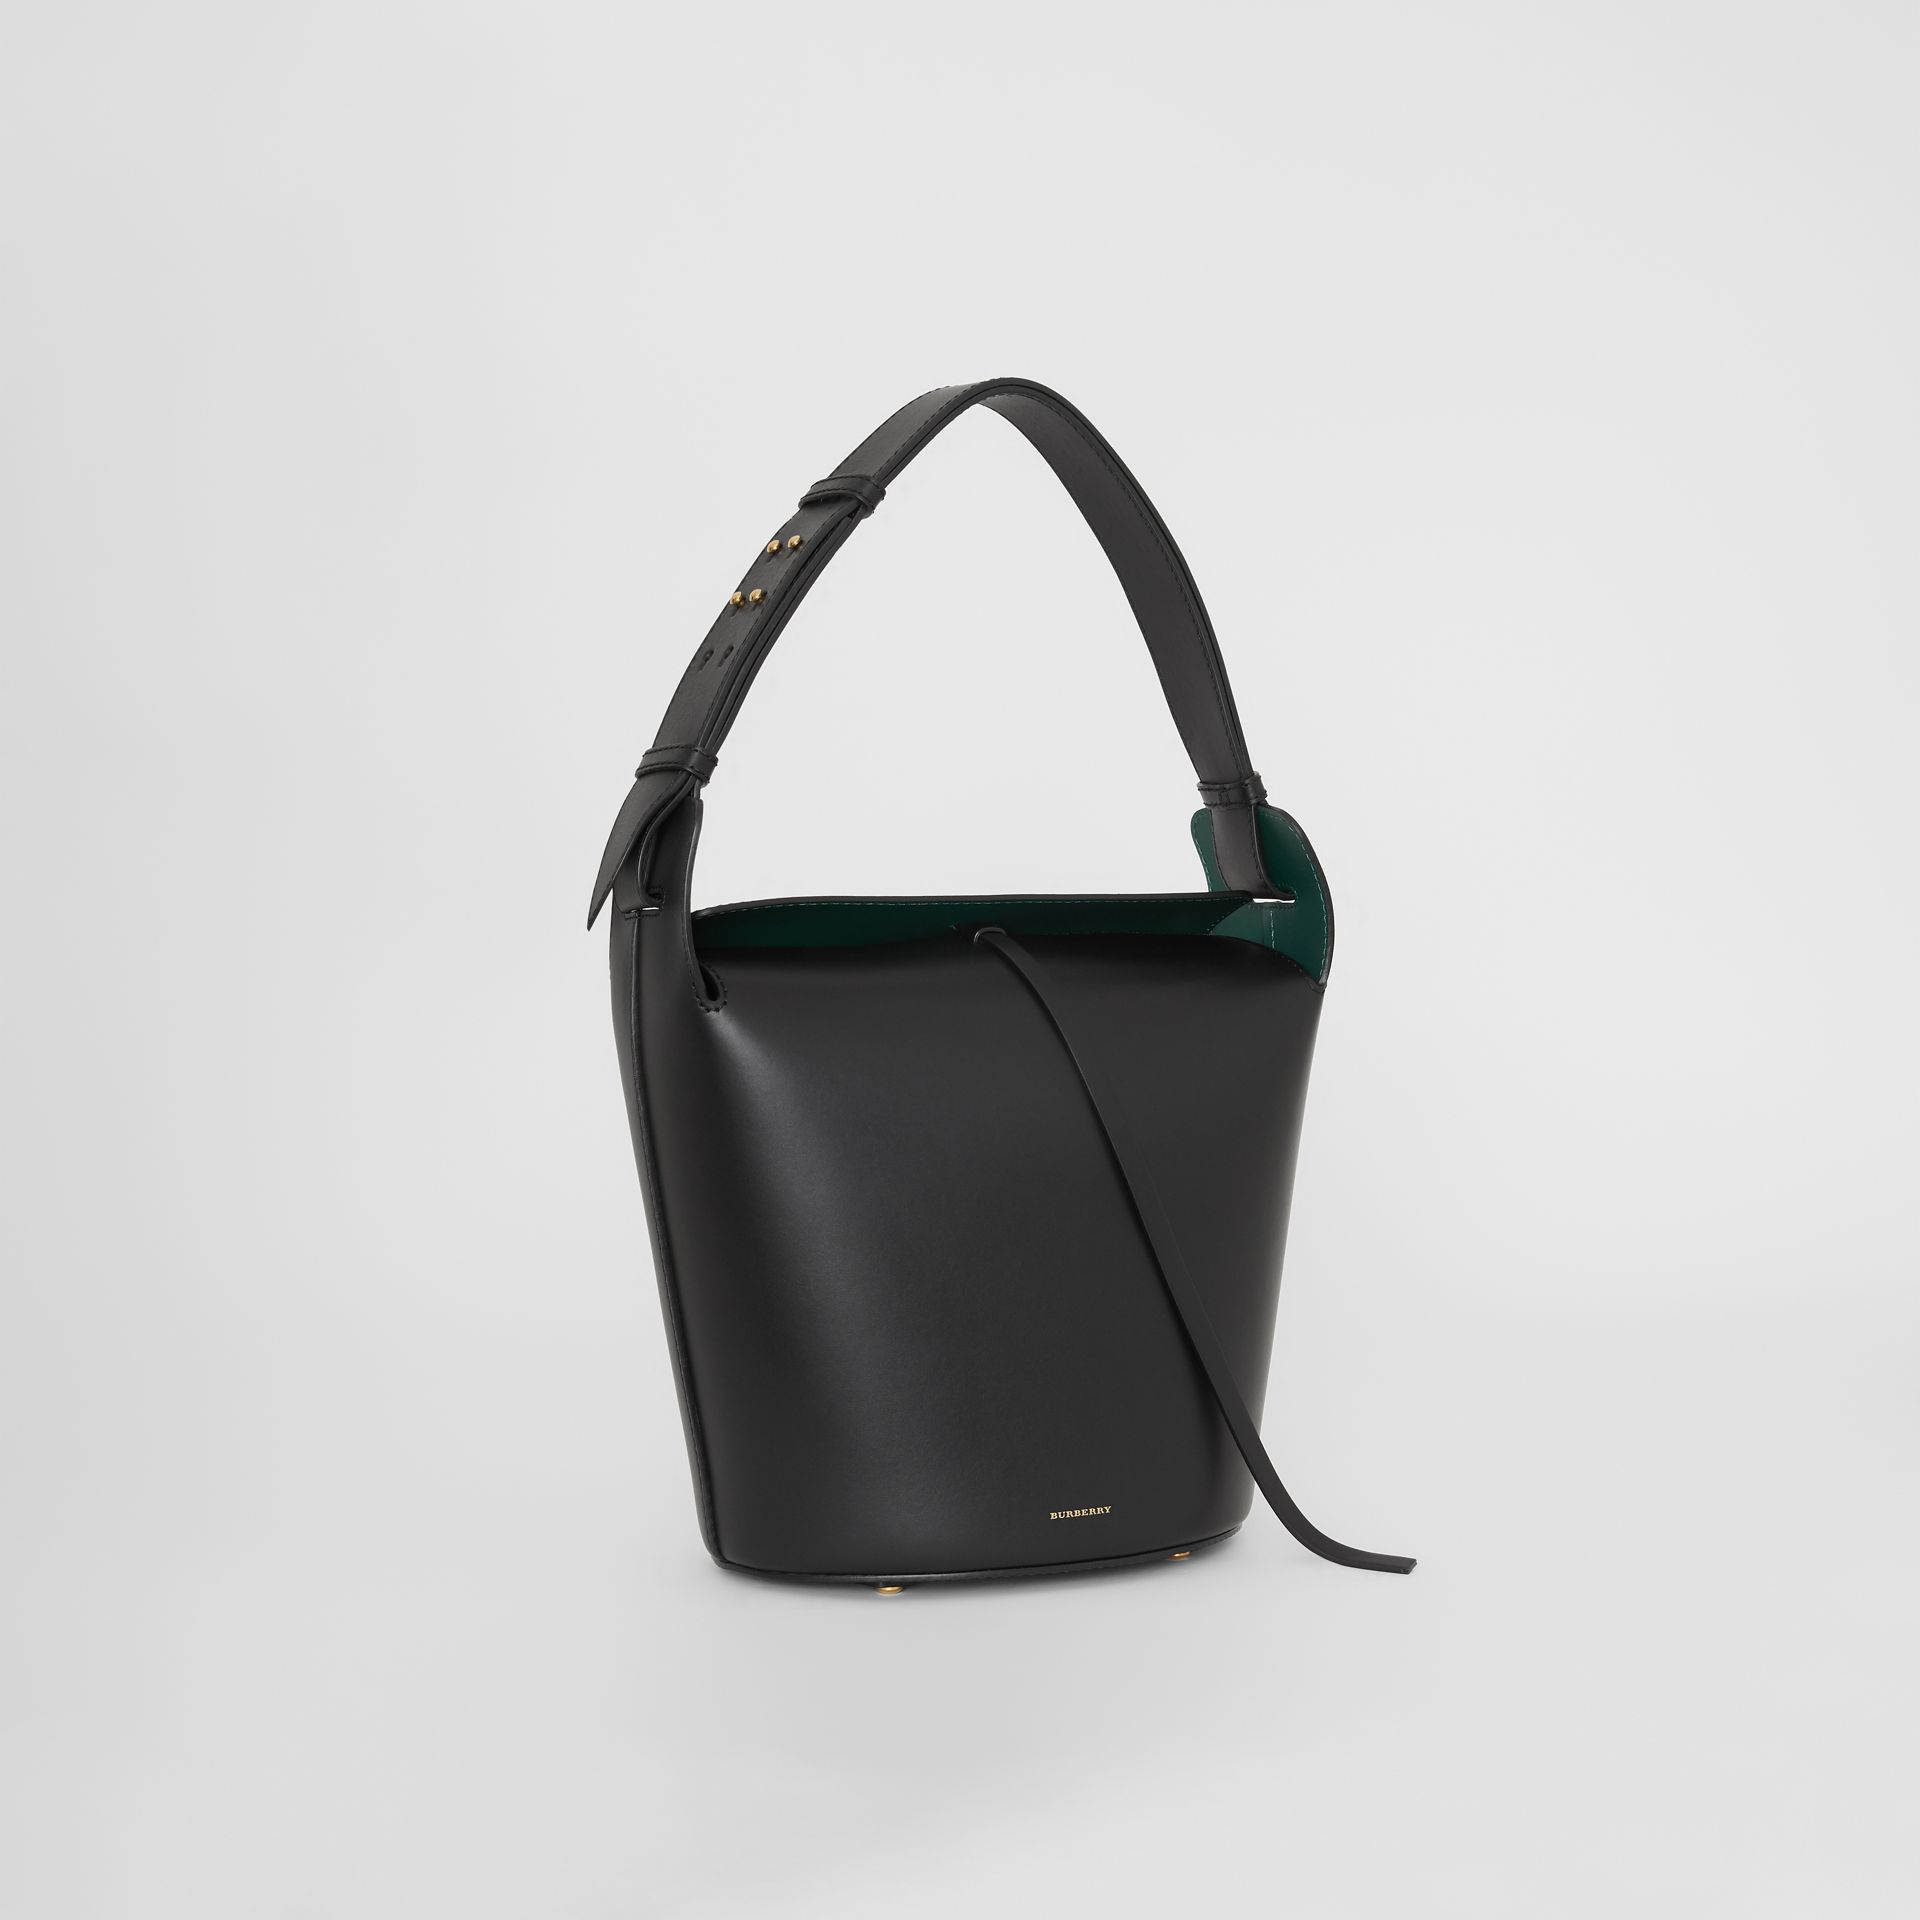 Sac The Bucket moyen en cuir (Noir) - Femme | Burberry - photo de la galerie 6